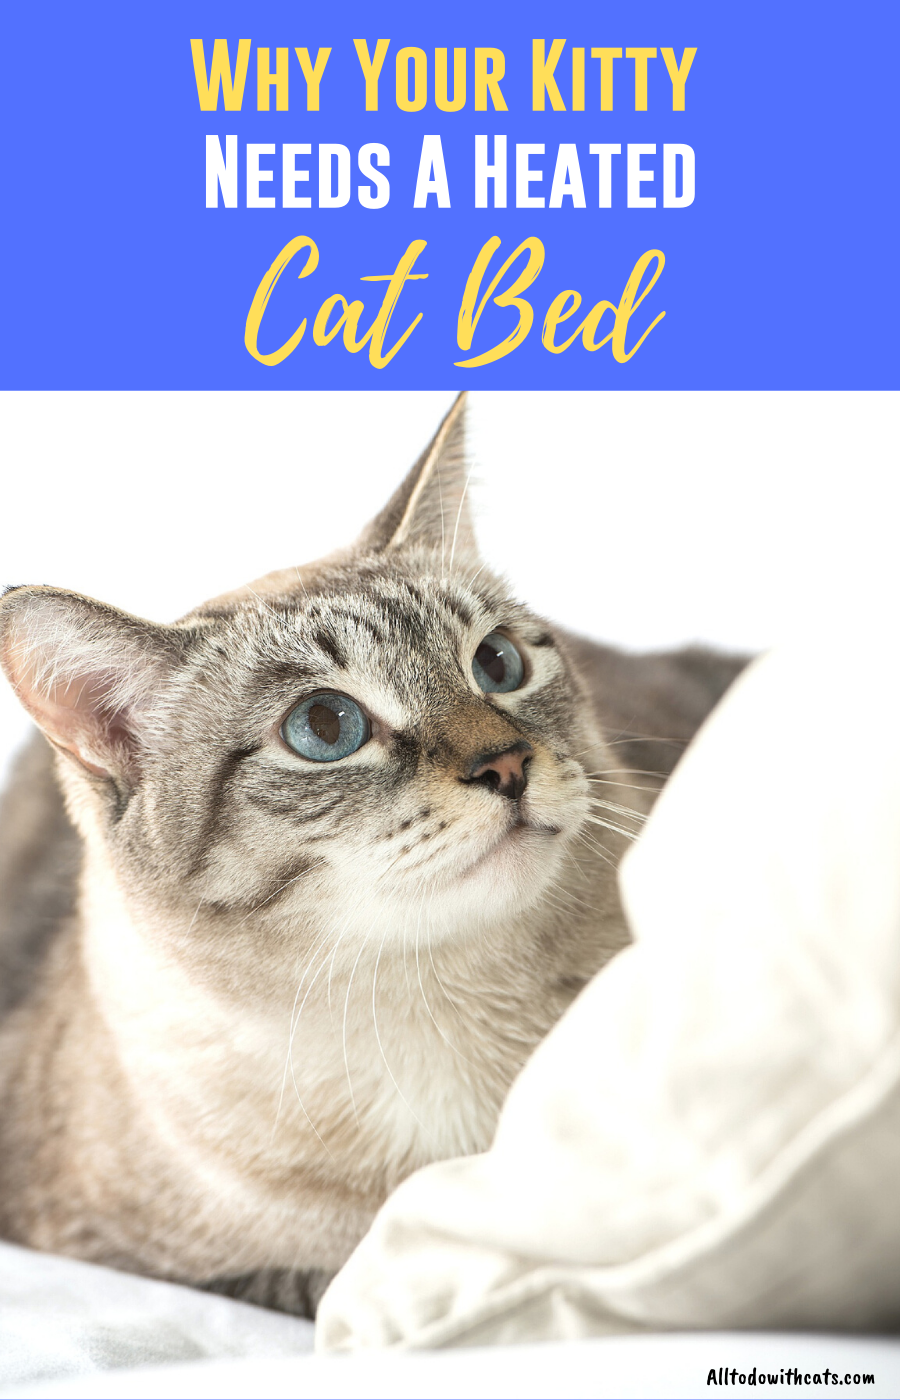 What Are The Best Heated Cat Beds? Heated cat bed, Diy